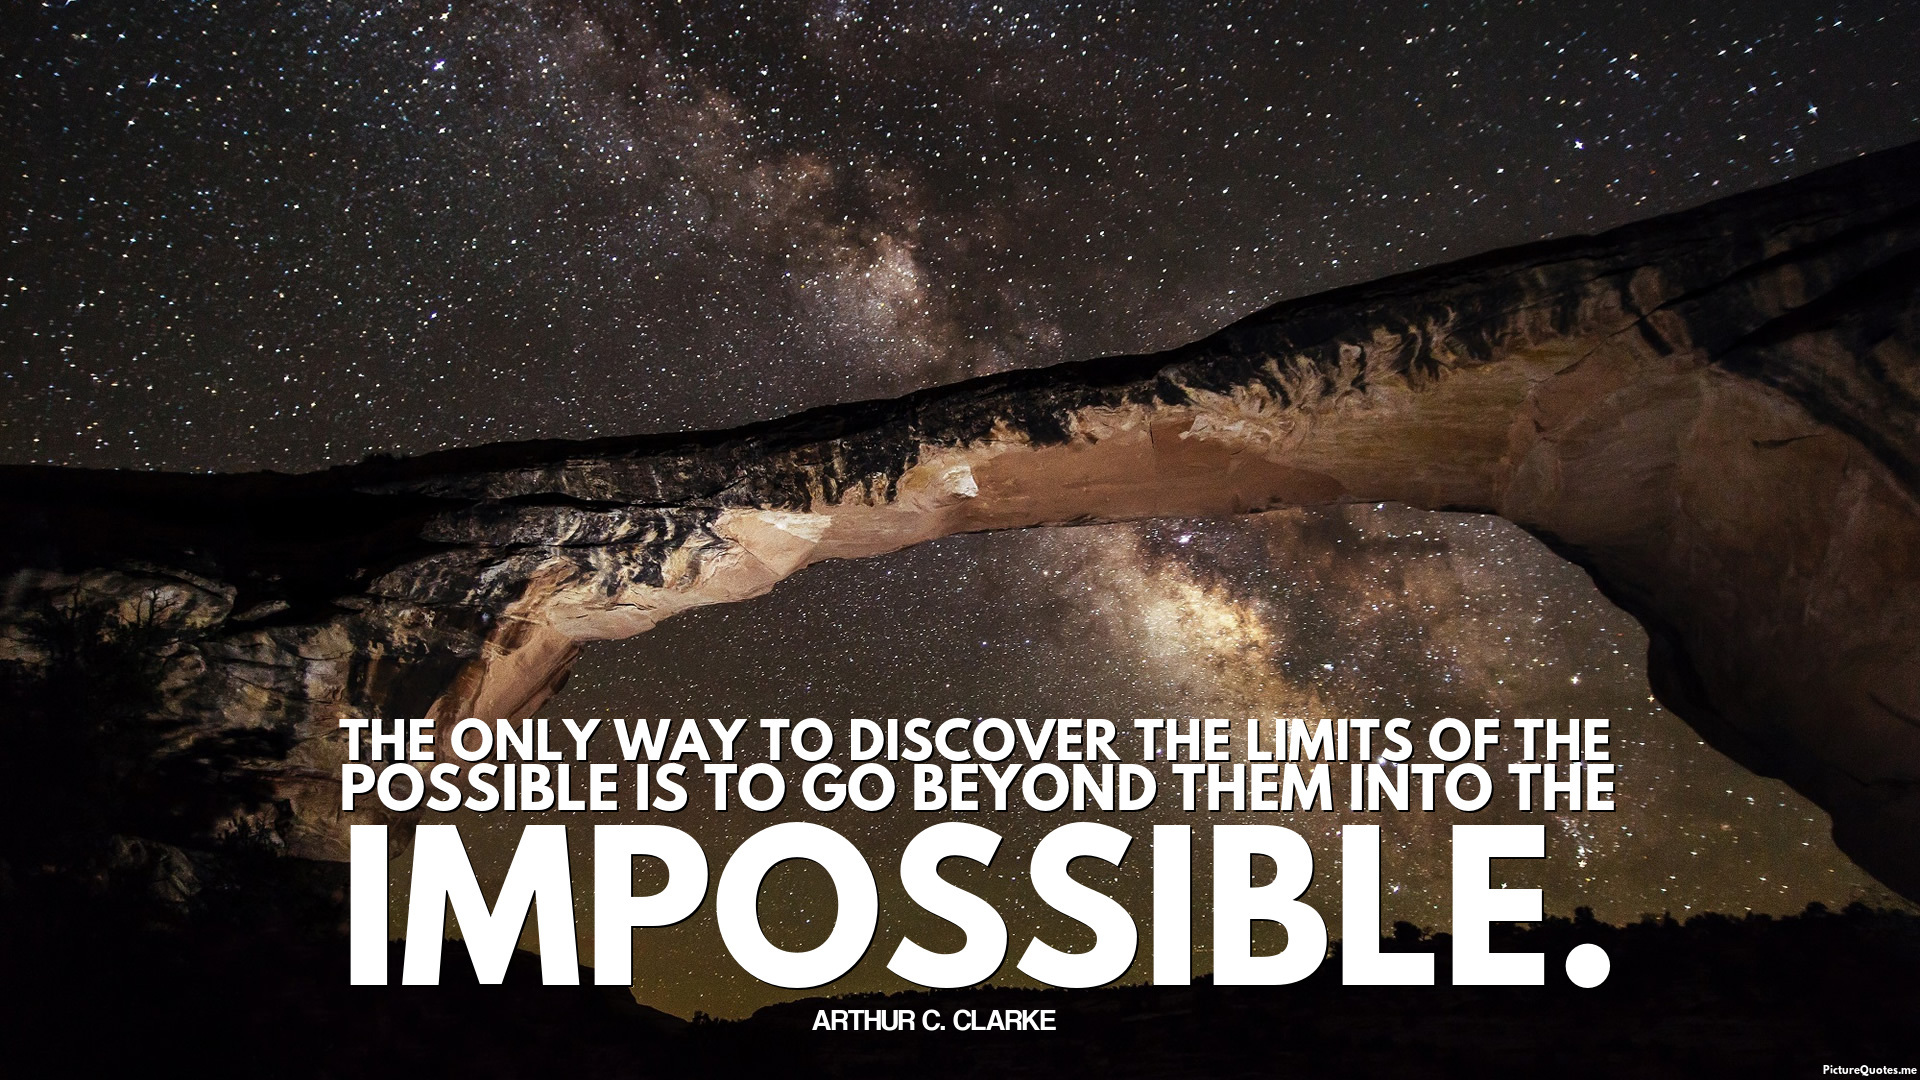 arthur_c__clarke_quote_the_only_way_to_discover_the_limits_of_the_possible_is_to_go_beyond_them_into_the_impossible_5328.jpg